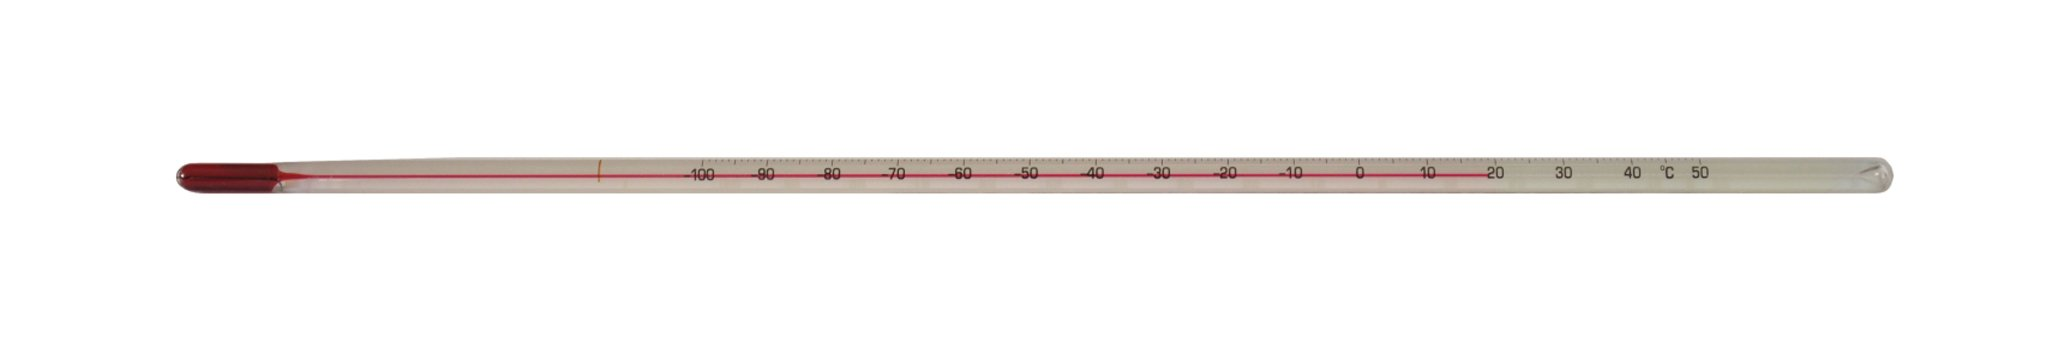 Thermco ACC610S SAMA Precision Red Spirit Filled Laboratory Thermometer, 0 to 230°F Range, 2°C Division, Total Immersion, 305mm Length by THERMCO (Image #1)